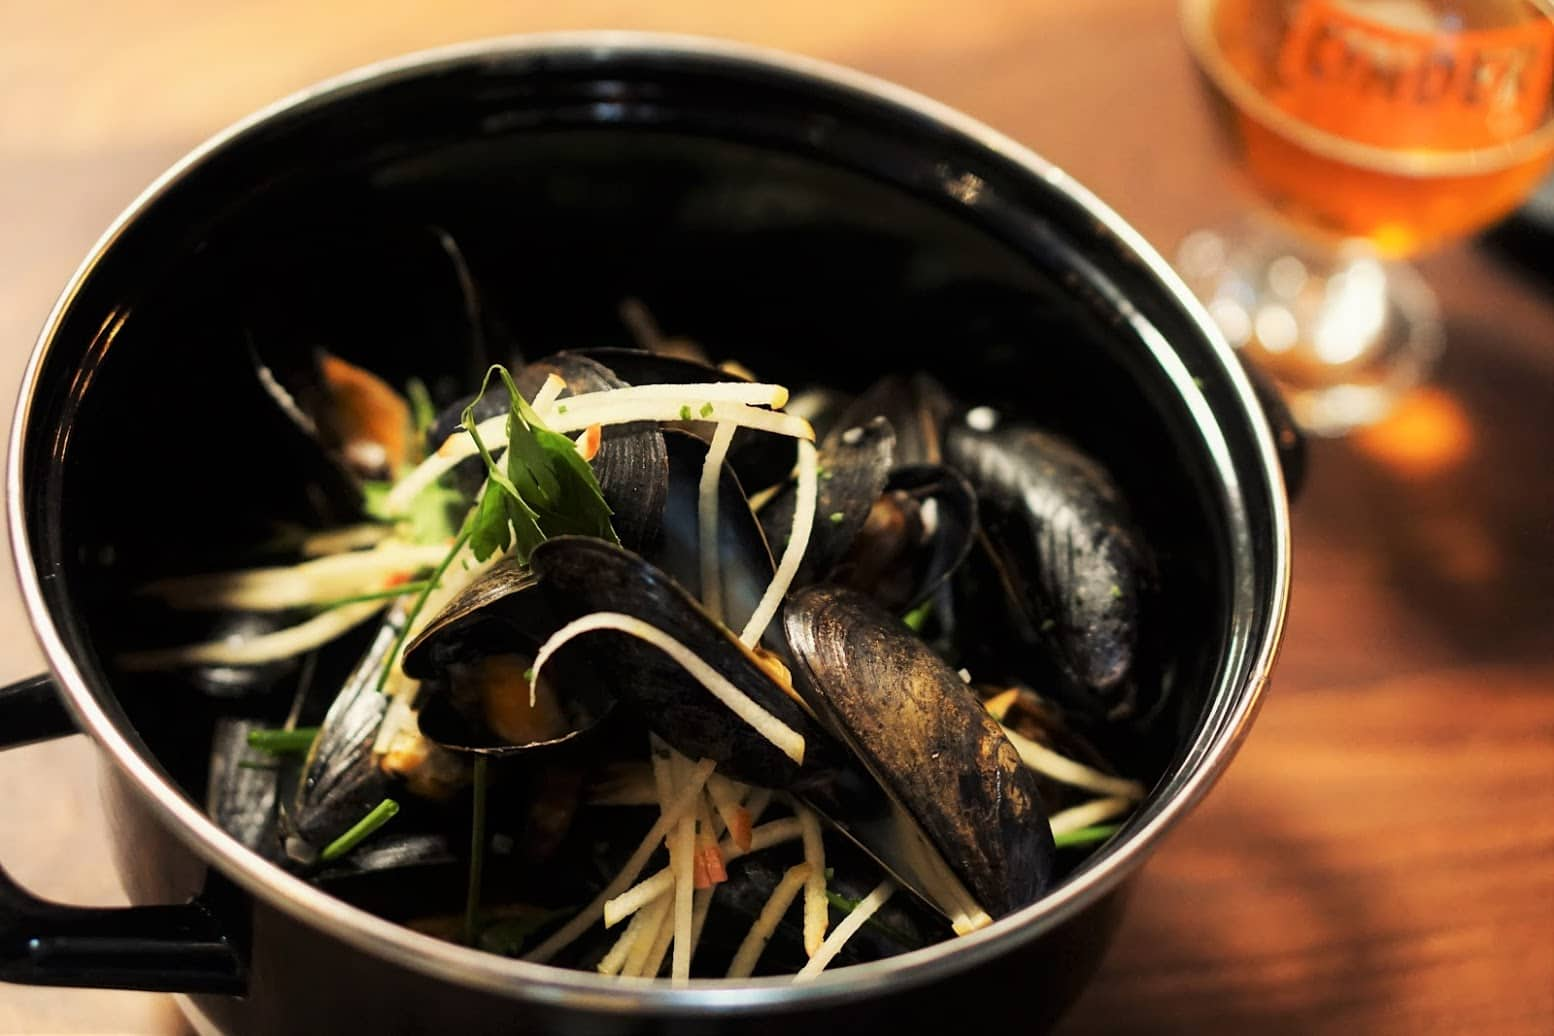 cinder-mussels-and-cider